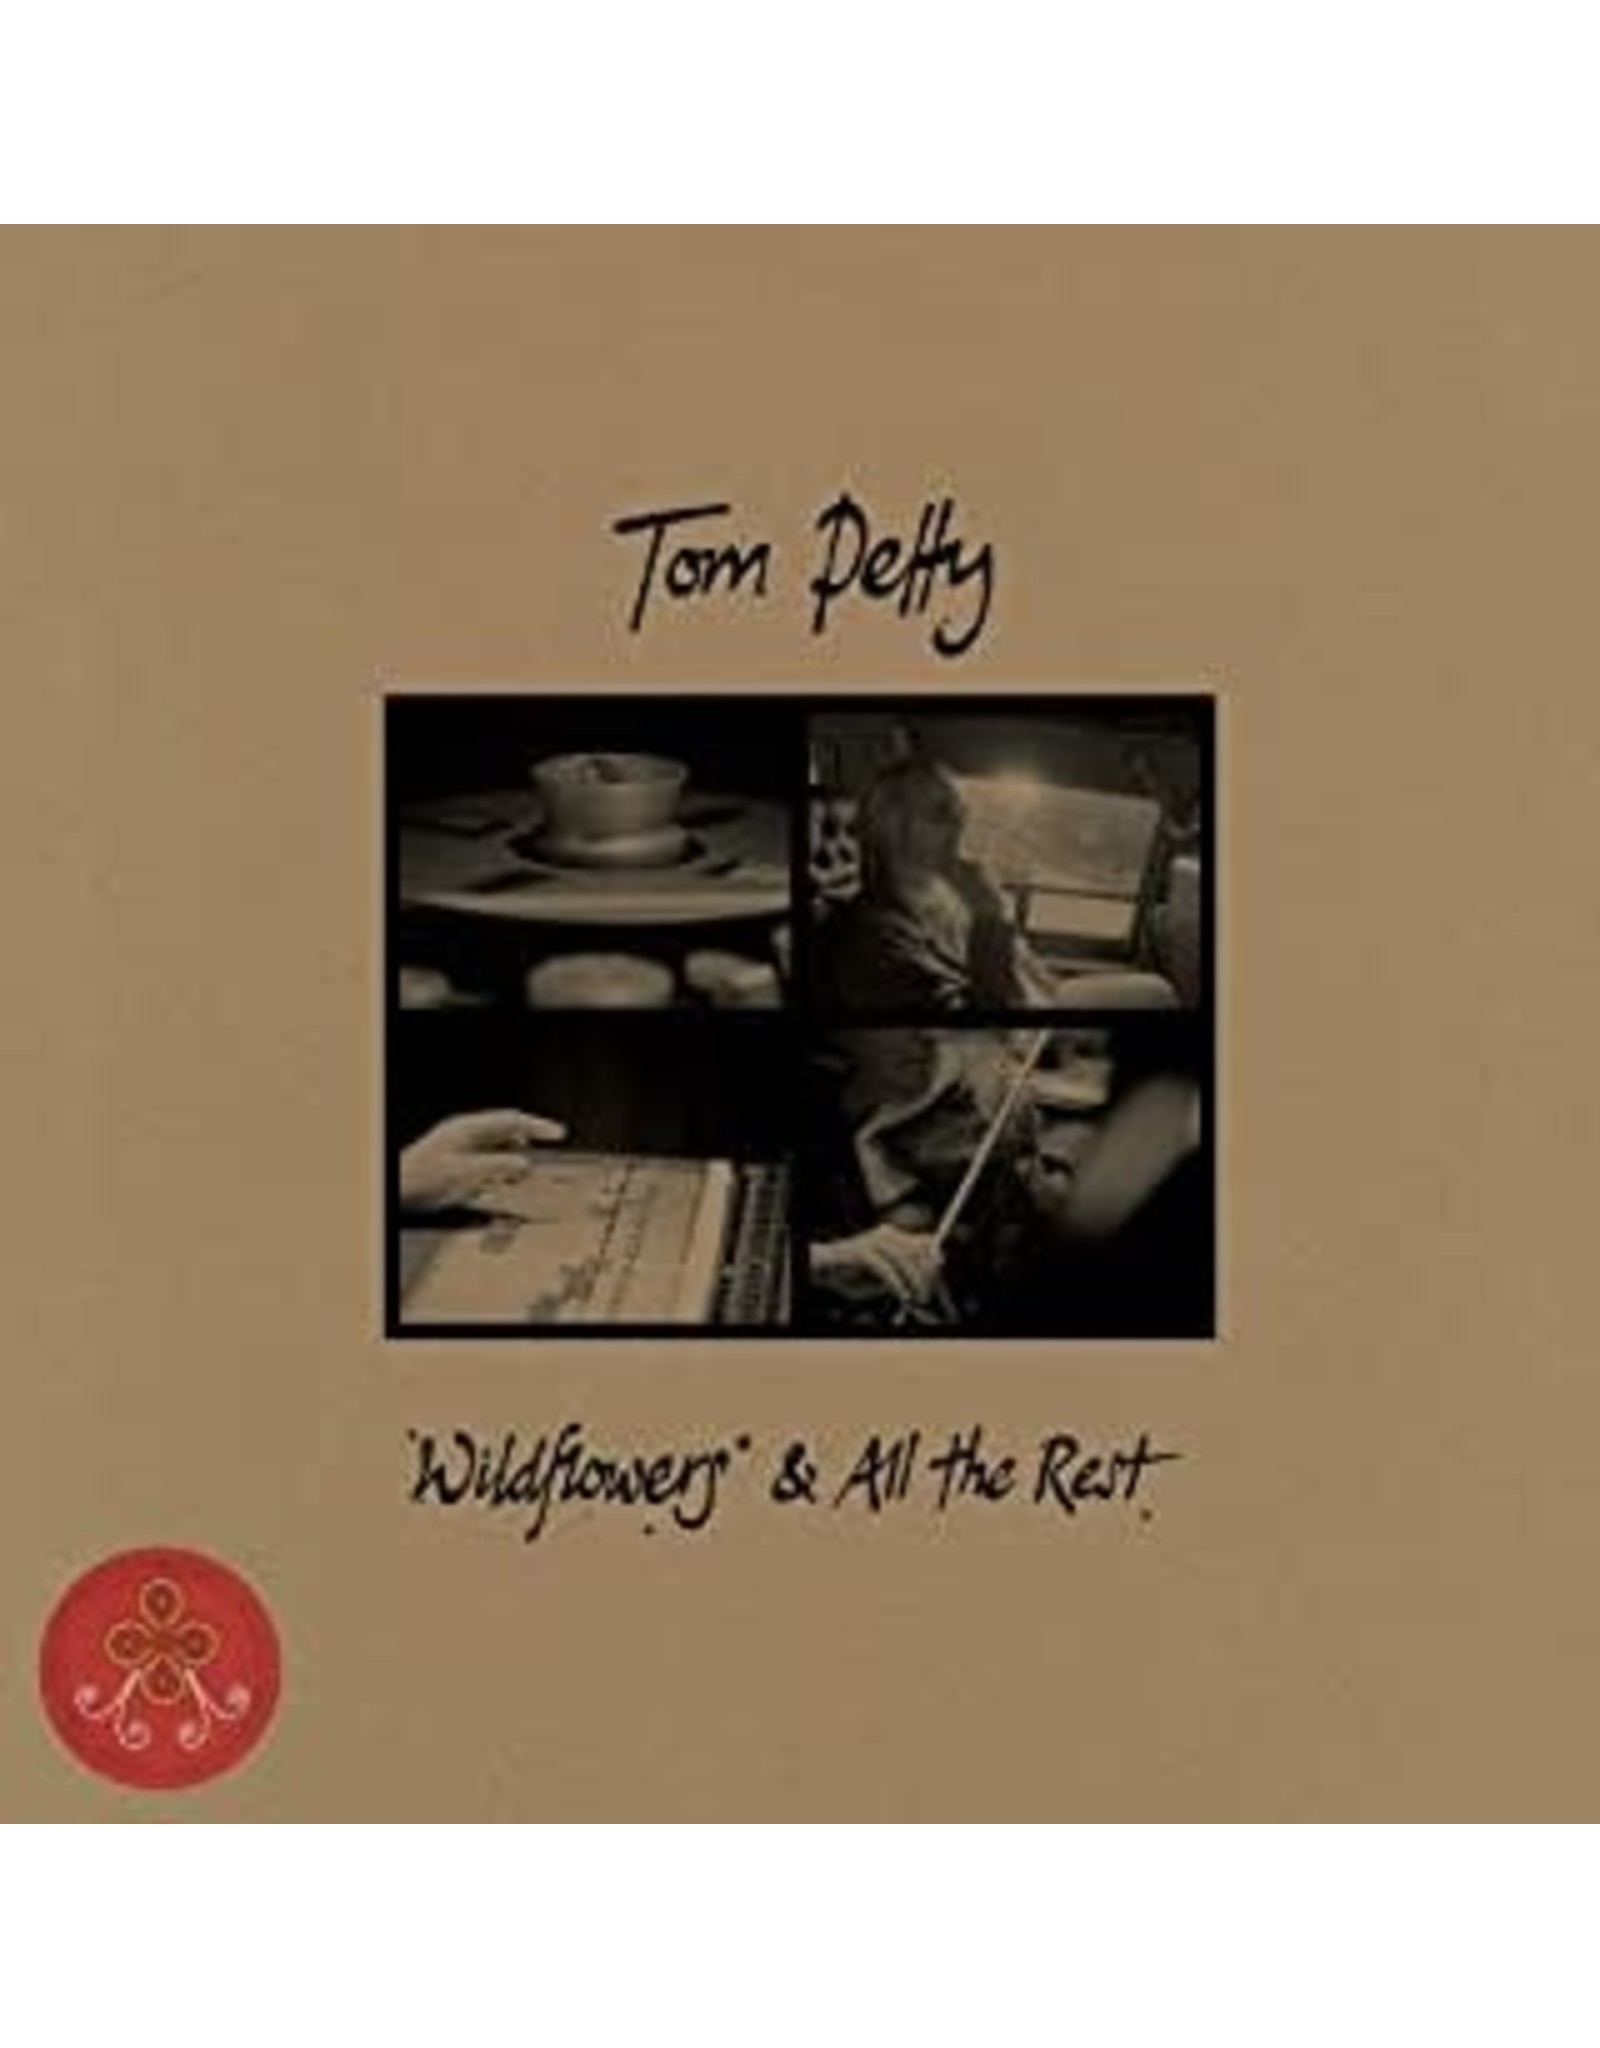 Petty, Tom - Wildflowers & All The Rest 2CD